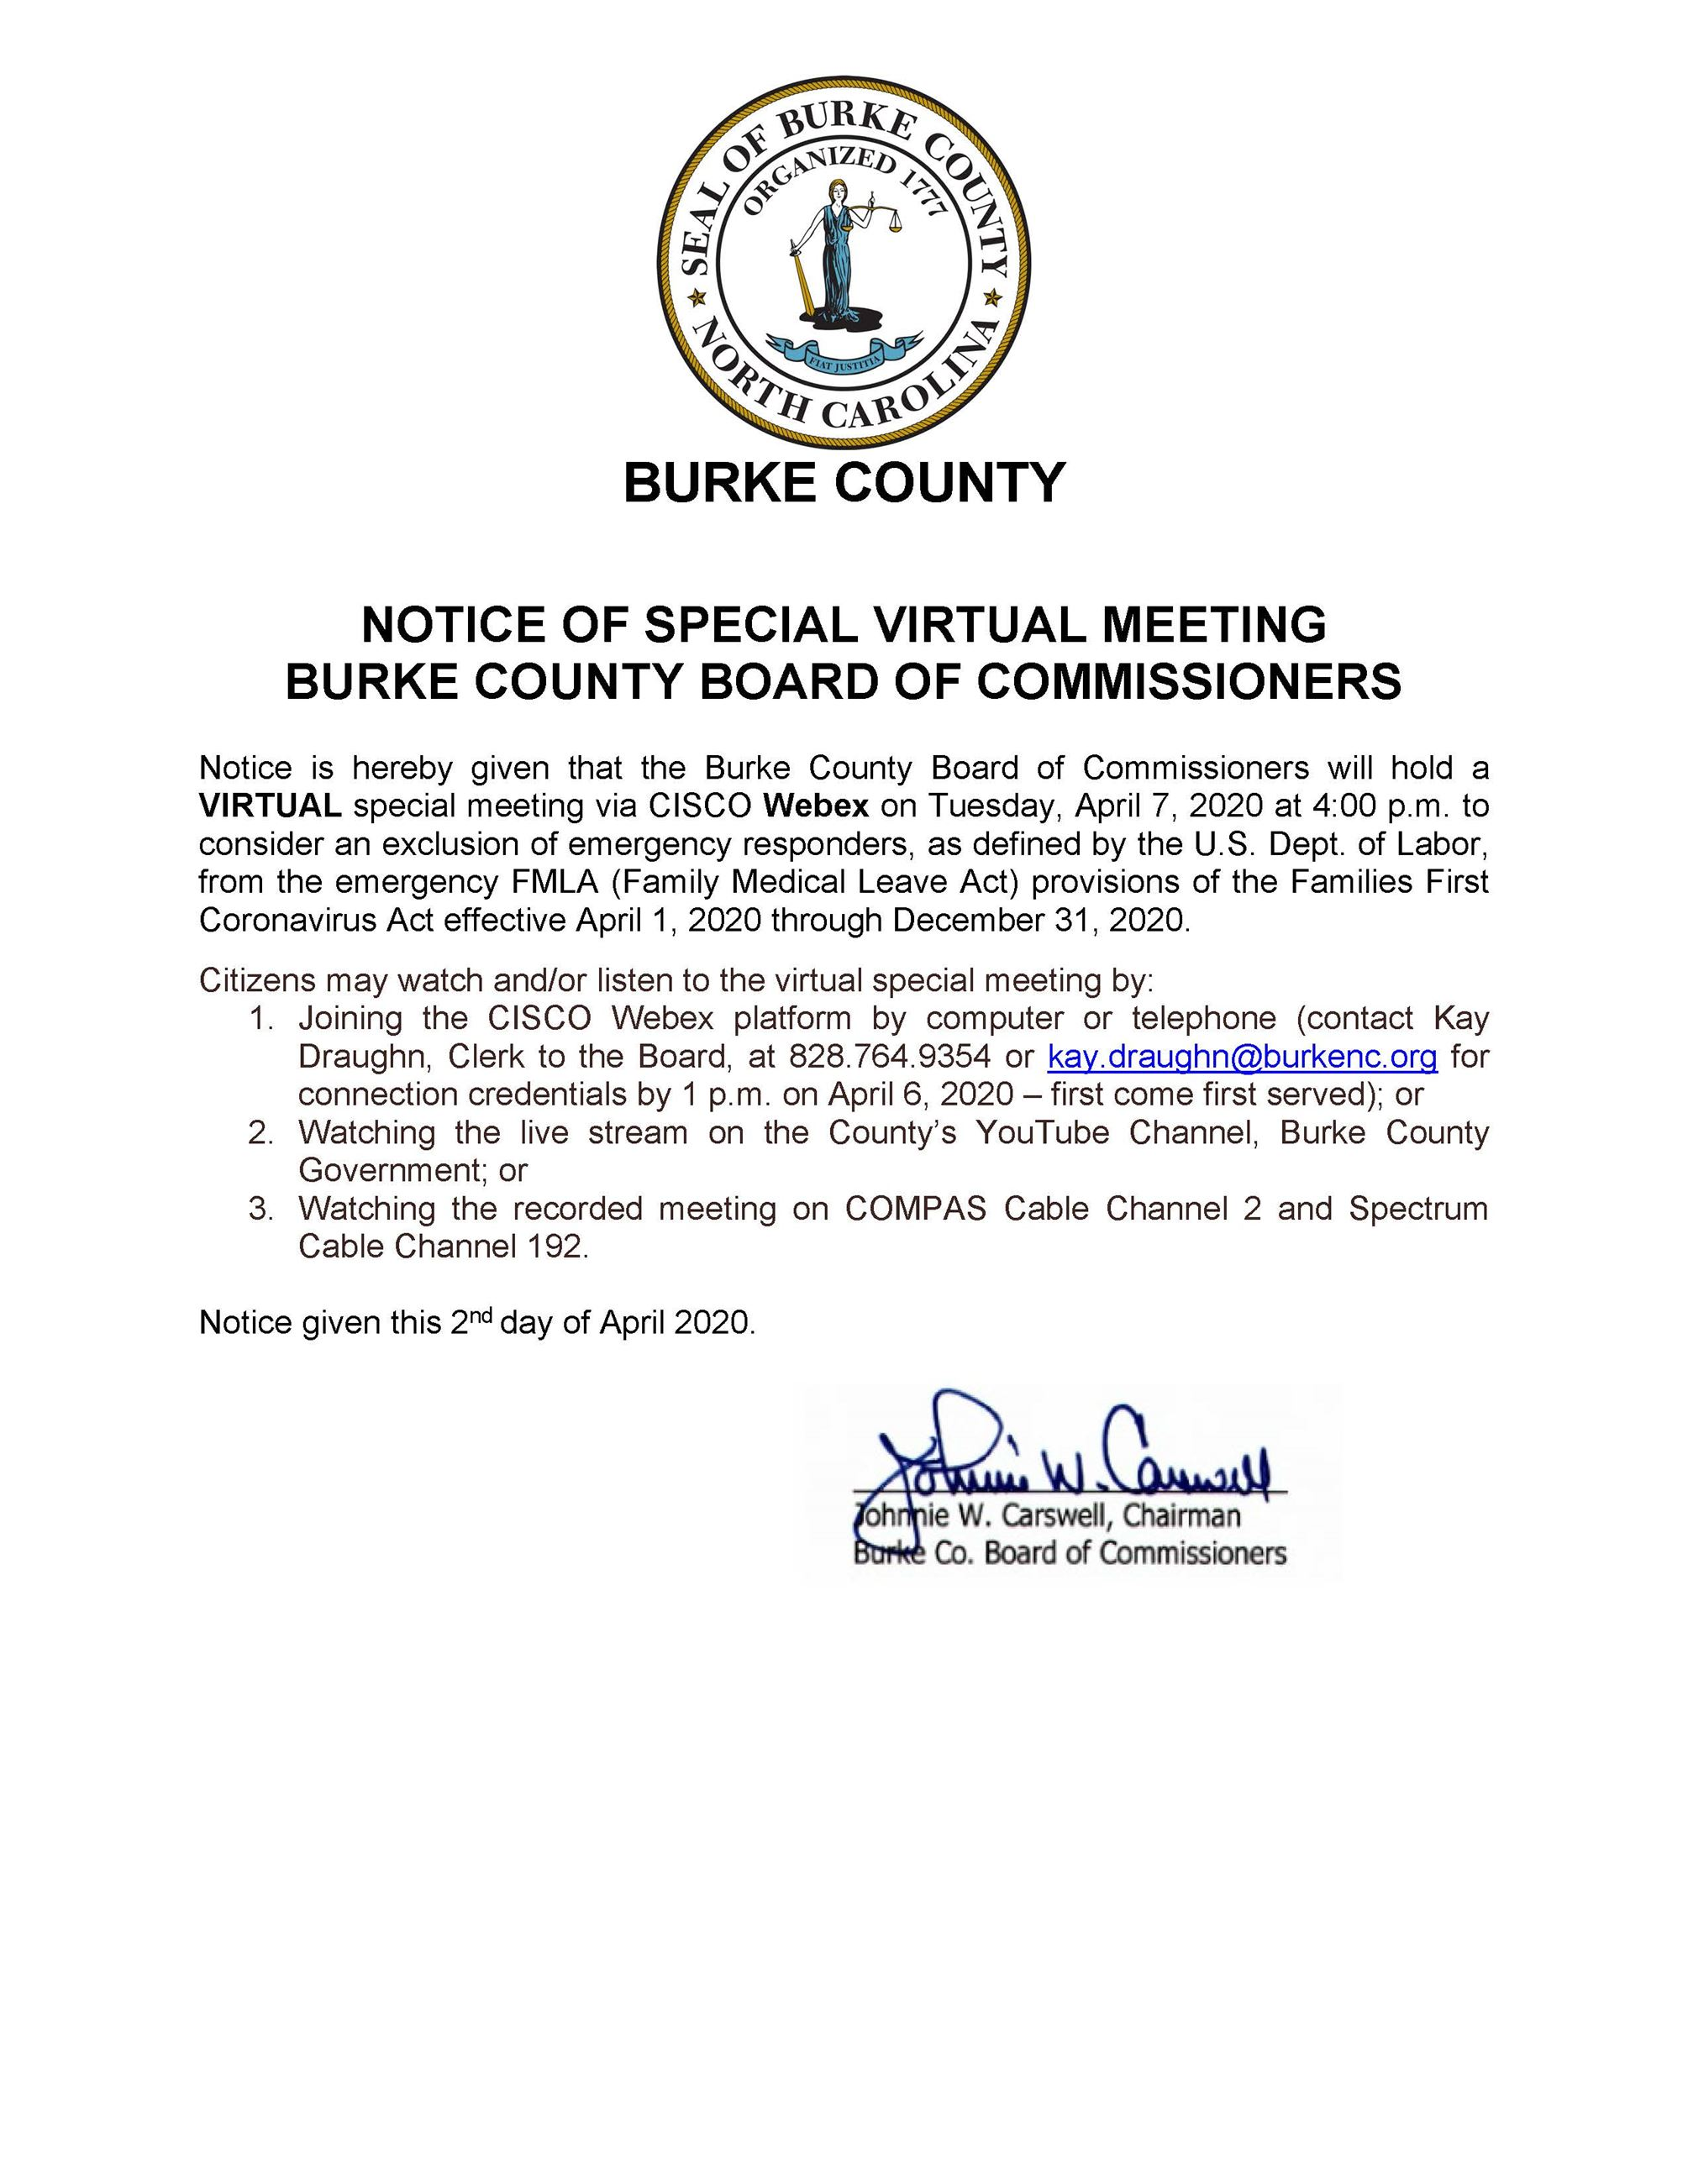 2020 04 07 Special Meeting Notice - FLMA Exemption